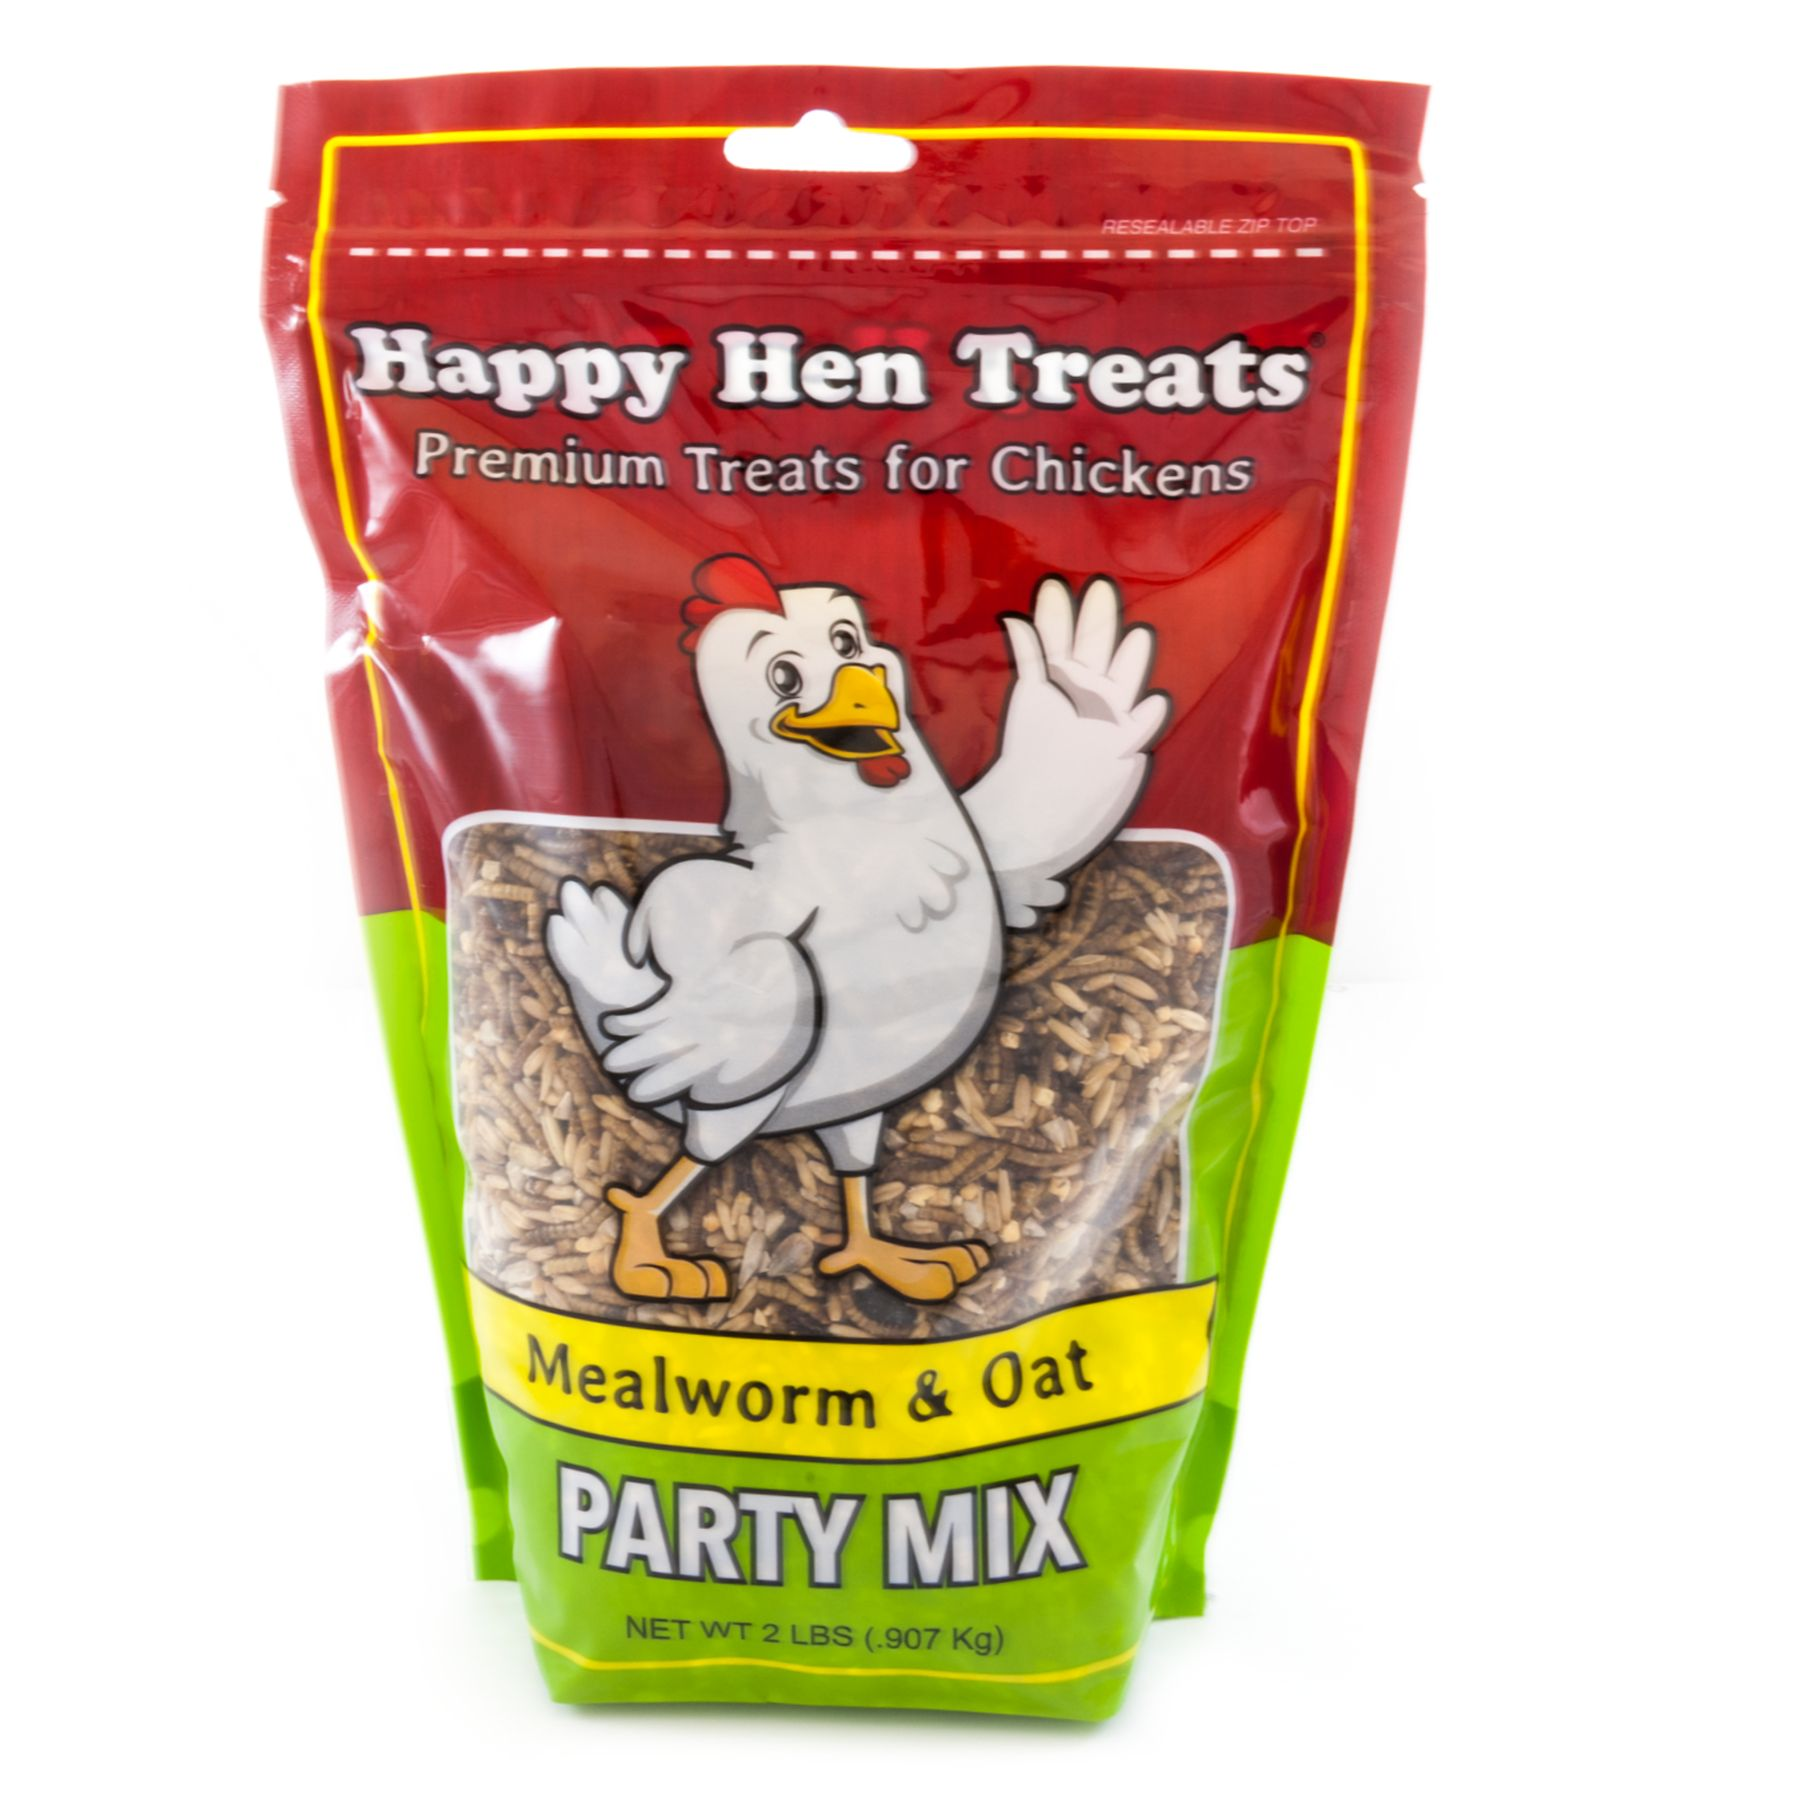 Happy Hen Treats Mealworm And Oat Party Mix Chicken Treats Size 2 Lb